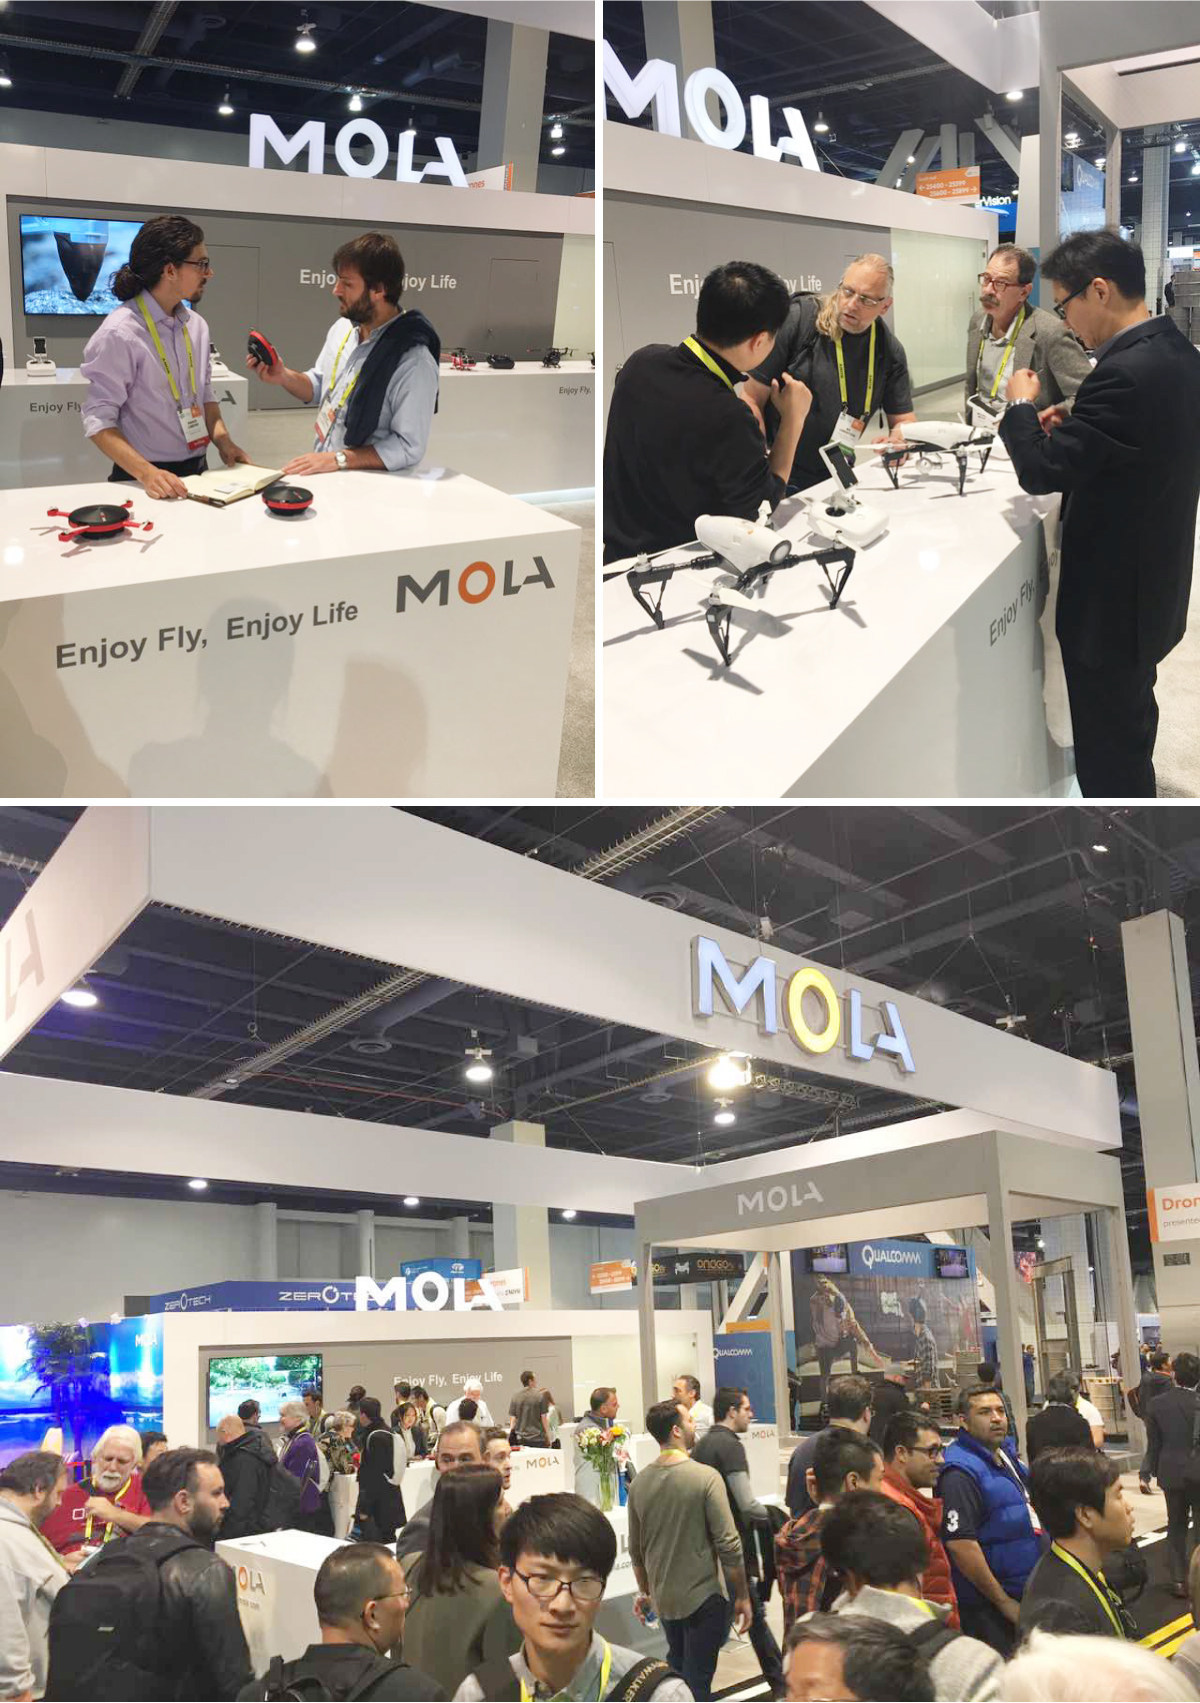 Nine Eagles -- MOLA booth at the 2017 CES